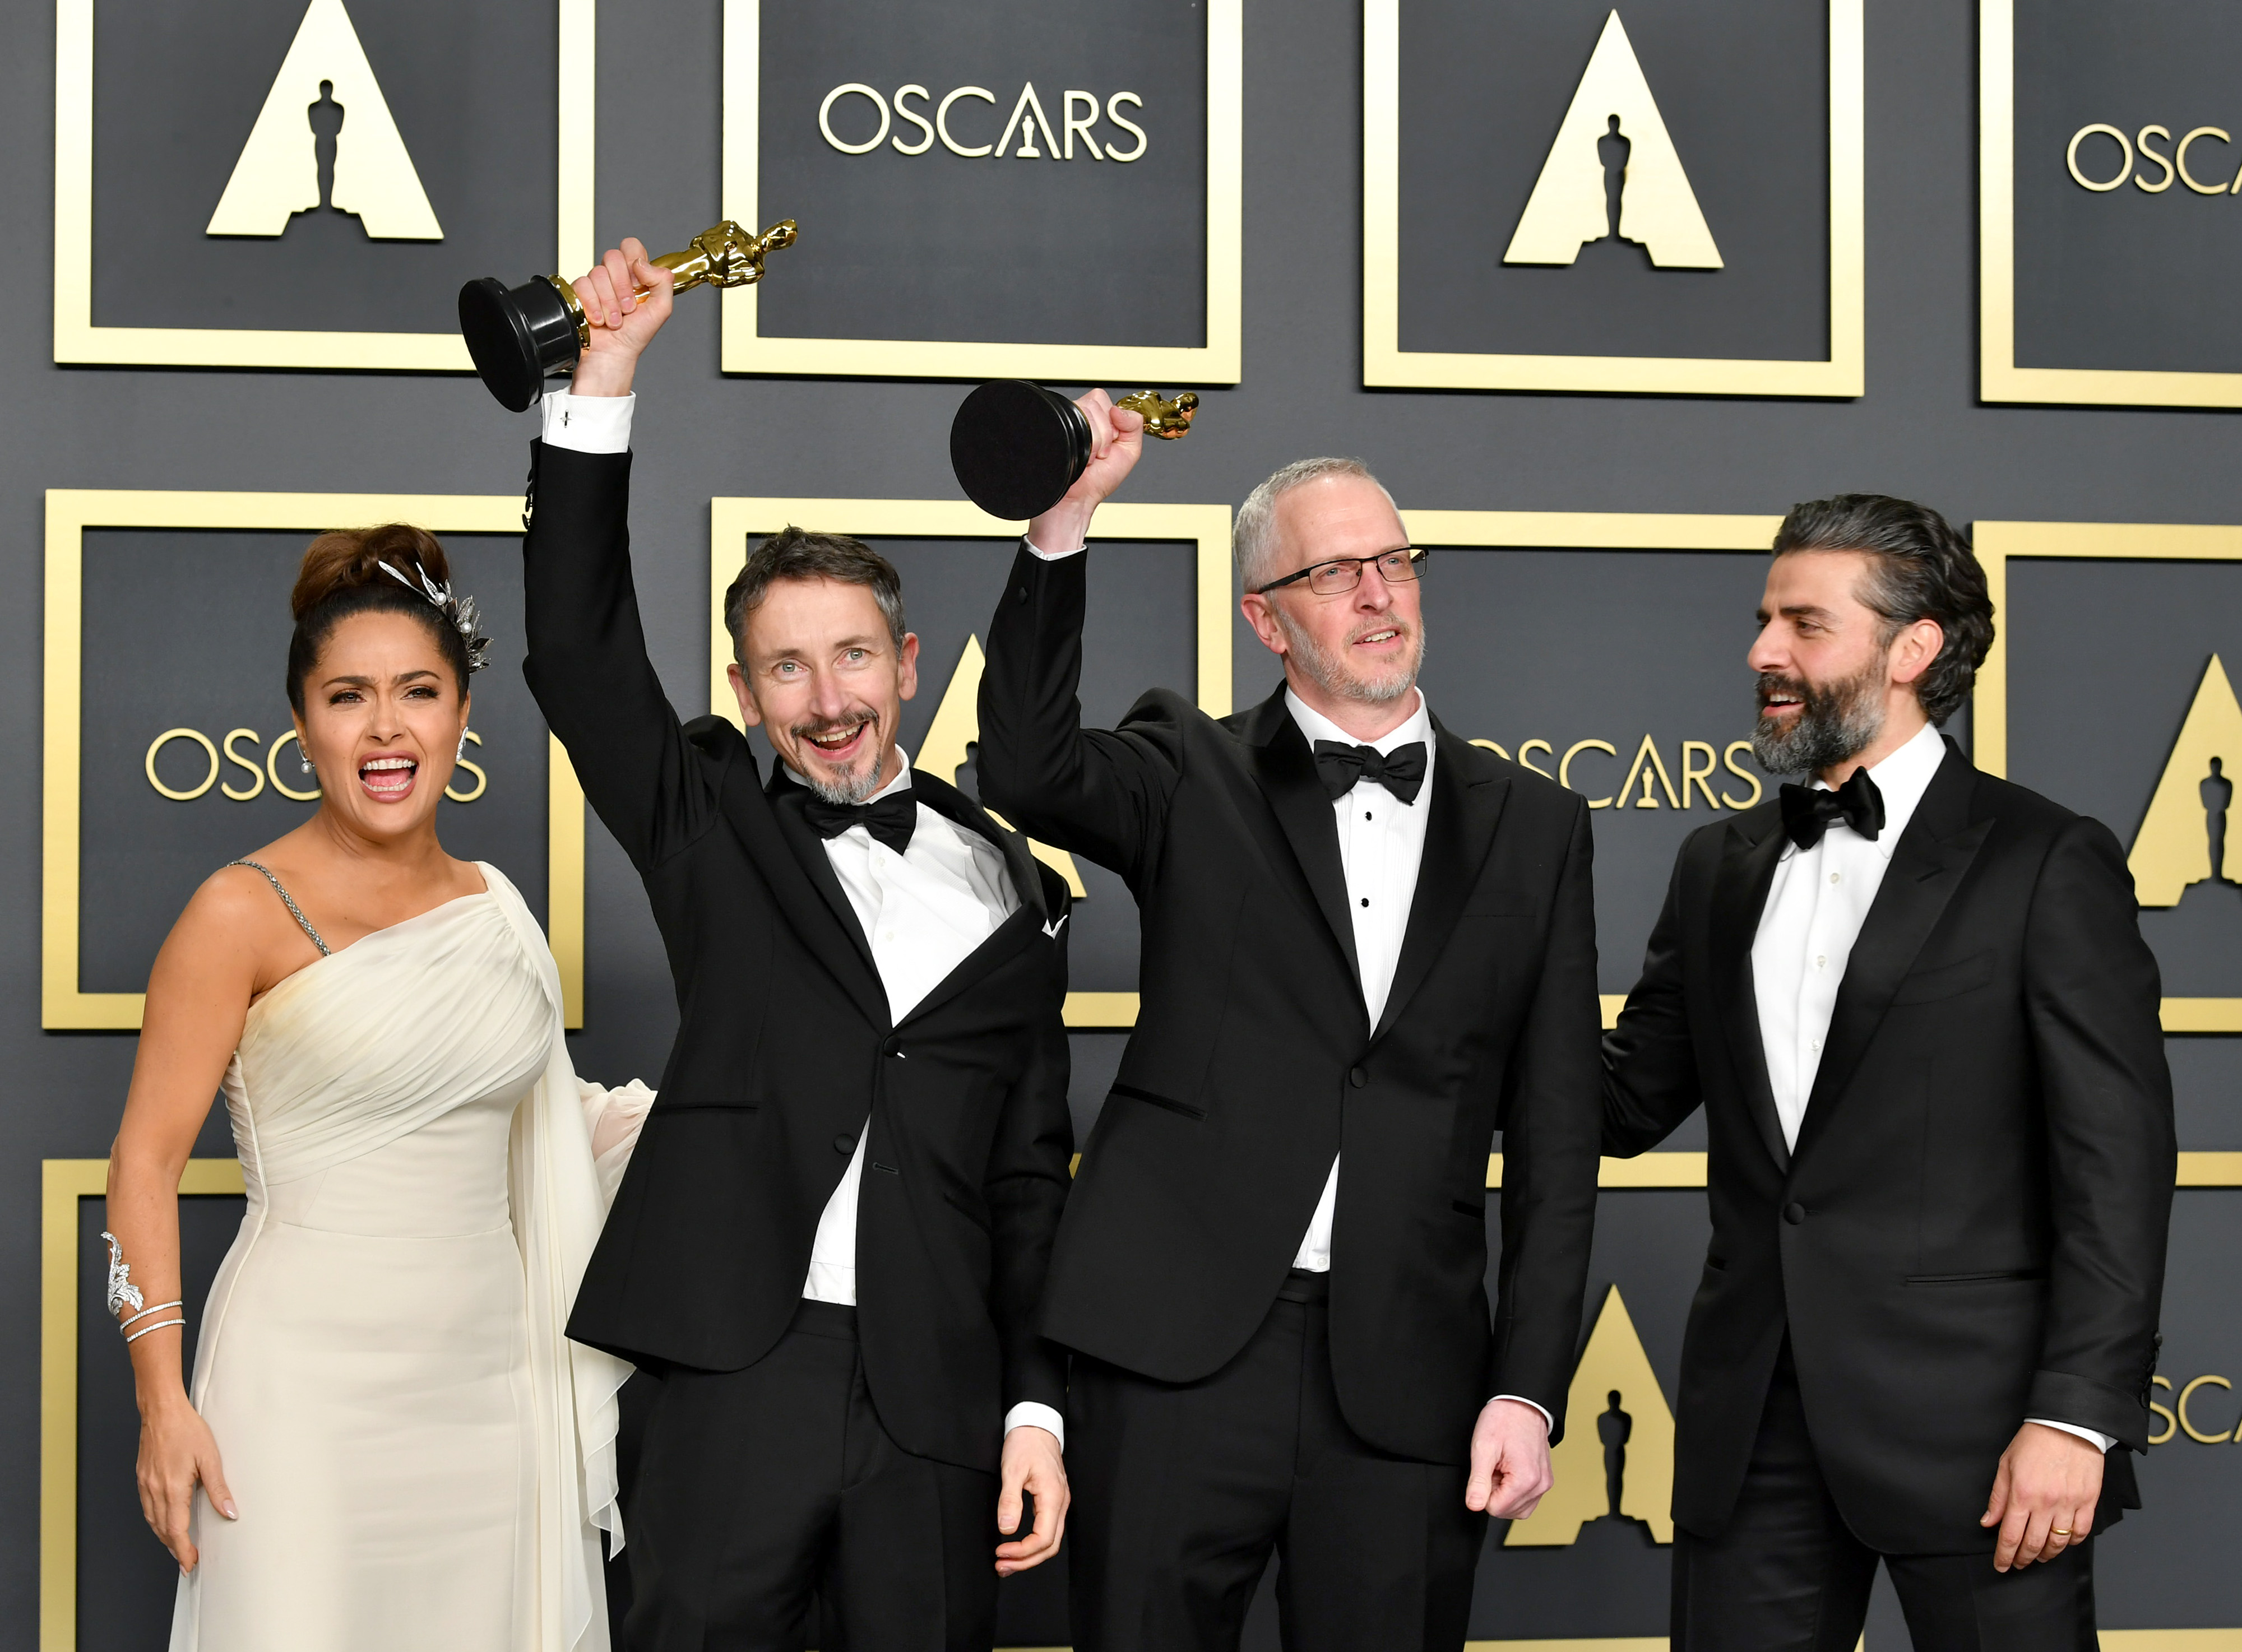 """Sound editors Mark Taylor and Stuart Wilson, winners of the Sound Mixing award for """"1917,""""  pose with Salma Hayek (L) and Oscar Isaac (R) in the press room during the 92nd Annual Academy Awards at Hollywood and Highland on February 09, 2020 in Hollywood, California. (Photo by Amy Sussman/Getty Images)"""